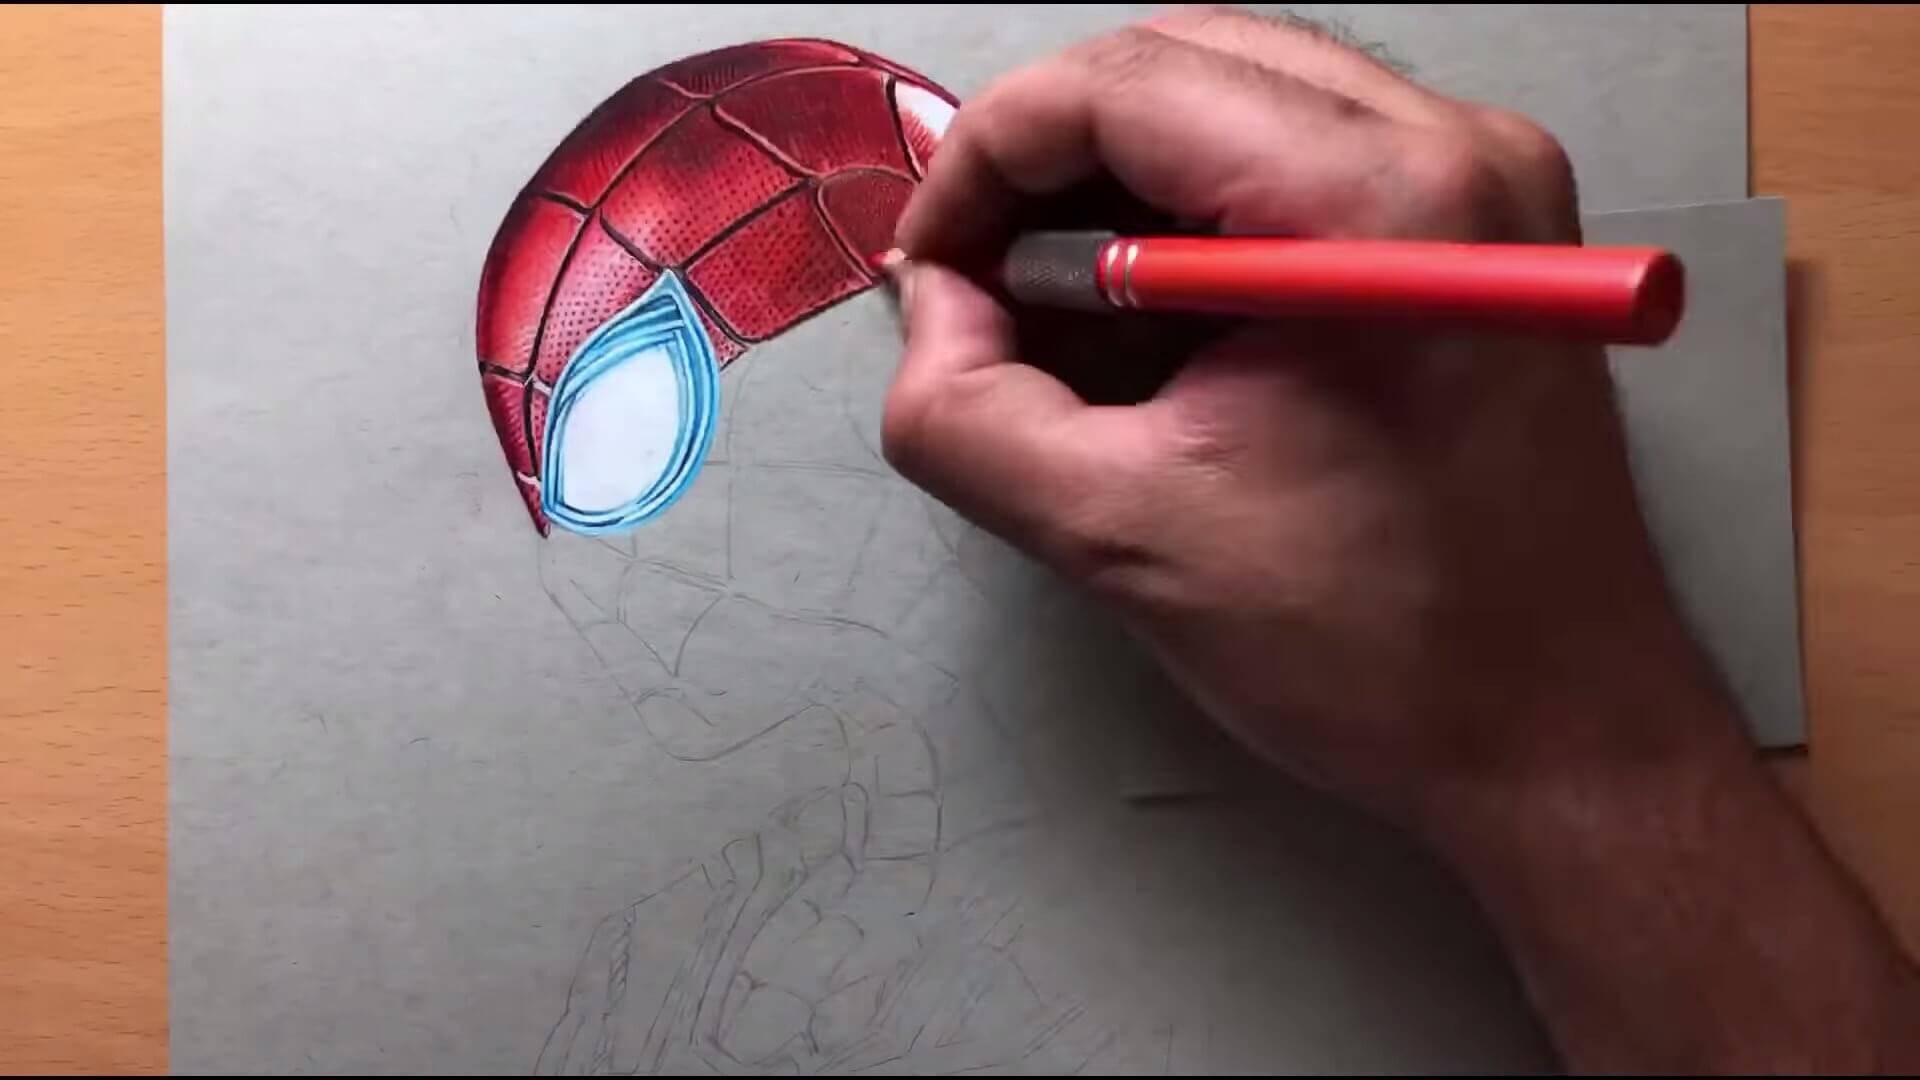 Drawing Iron Spider Man Iron Suit Marvel Timelapse Artology 0 38 screenshot